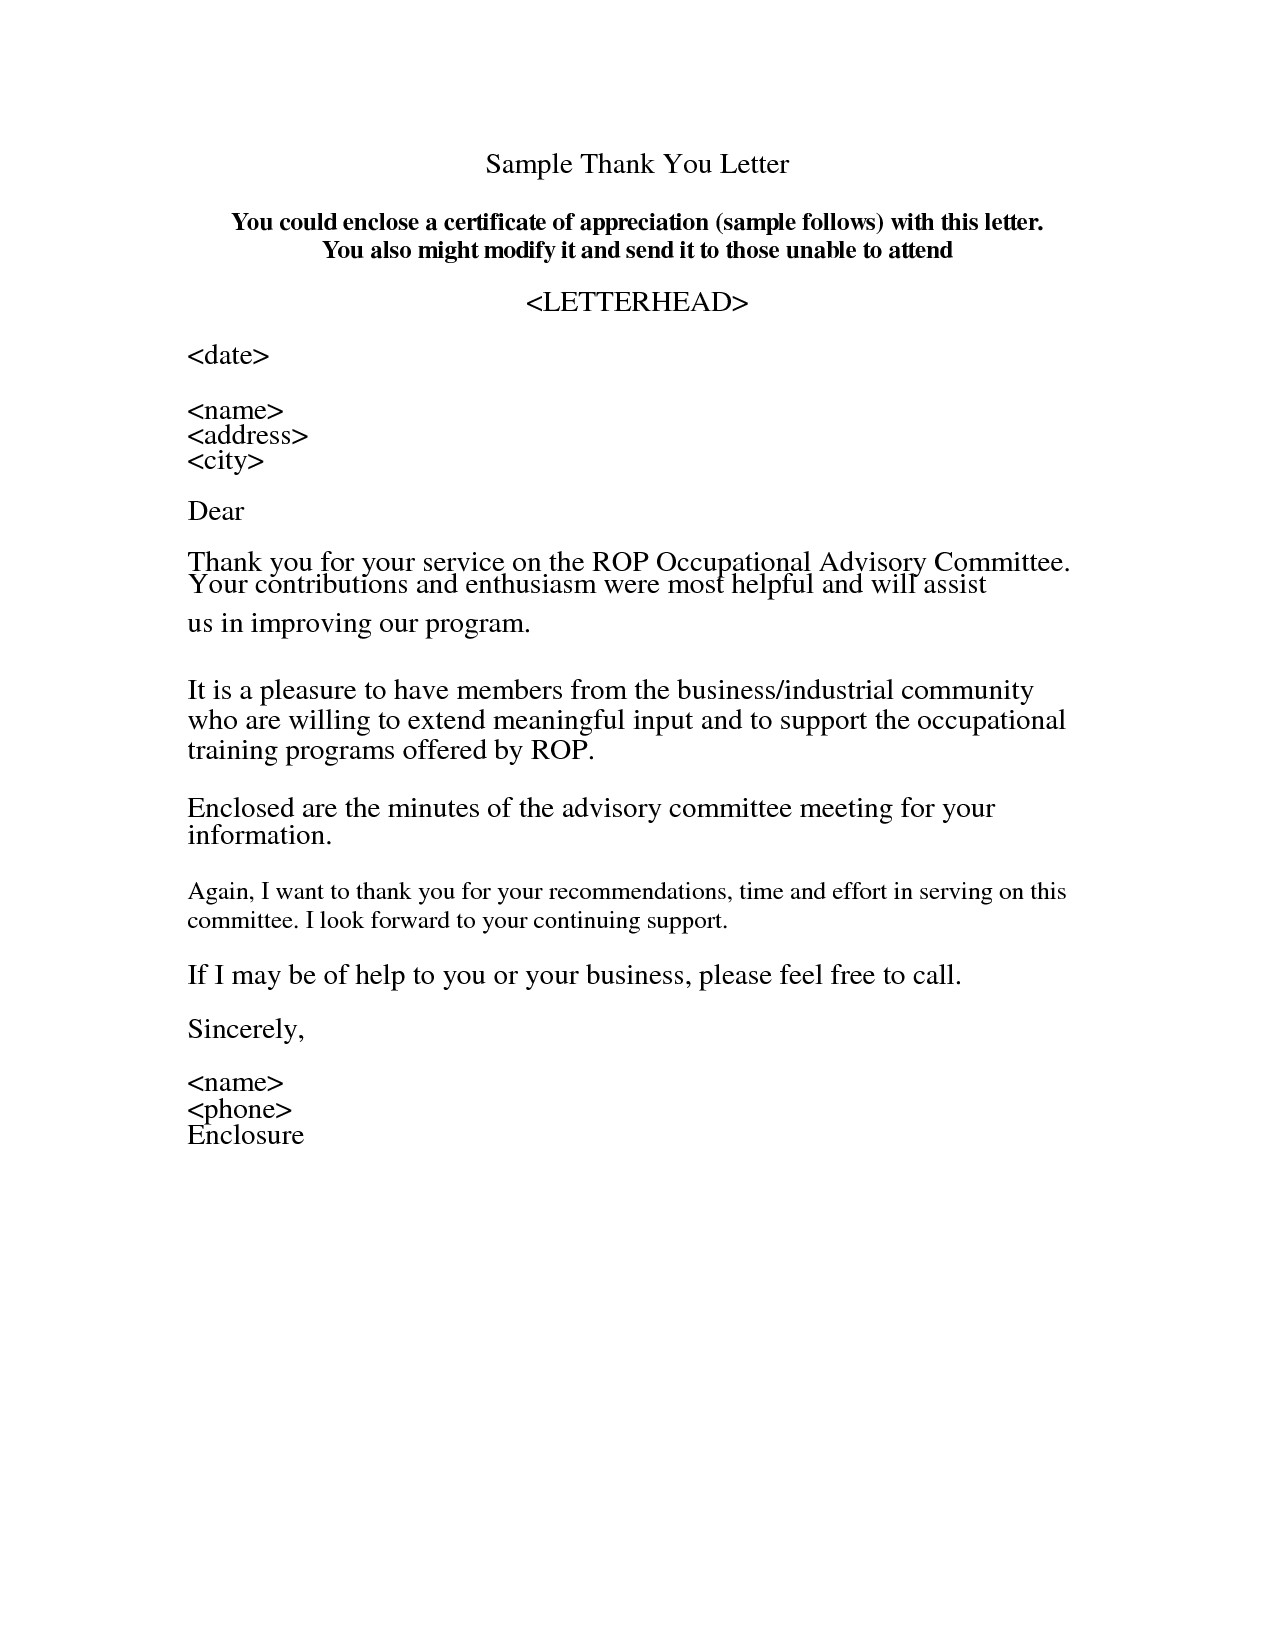 Interview Thank You Letter Template - Appreciation Letter Sample Acurnamedia